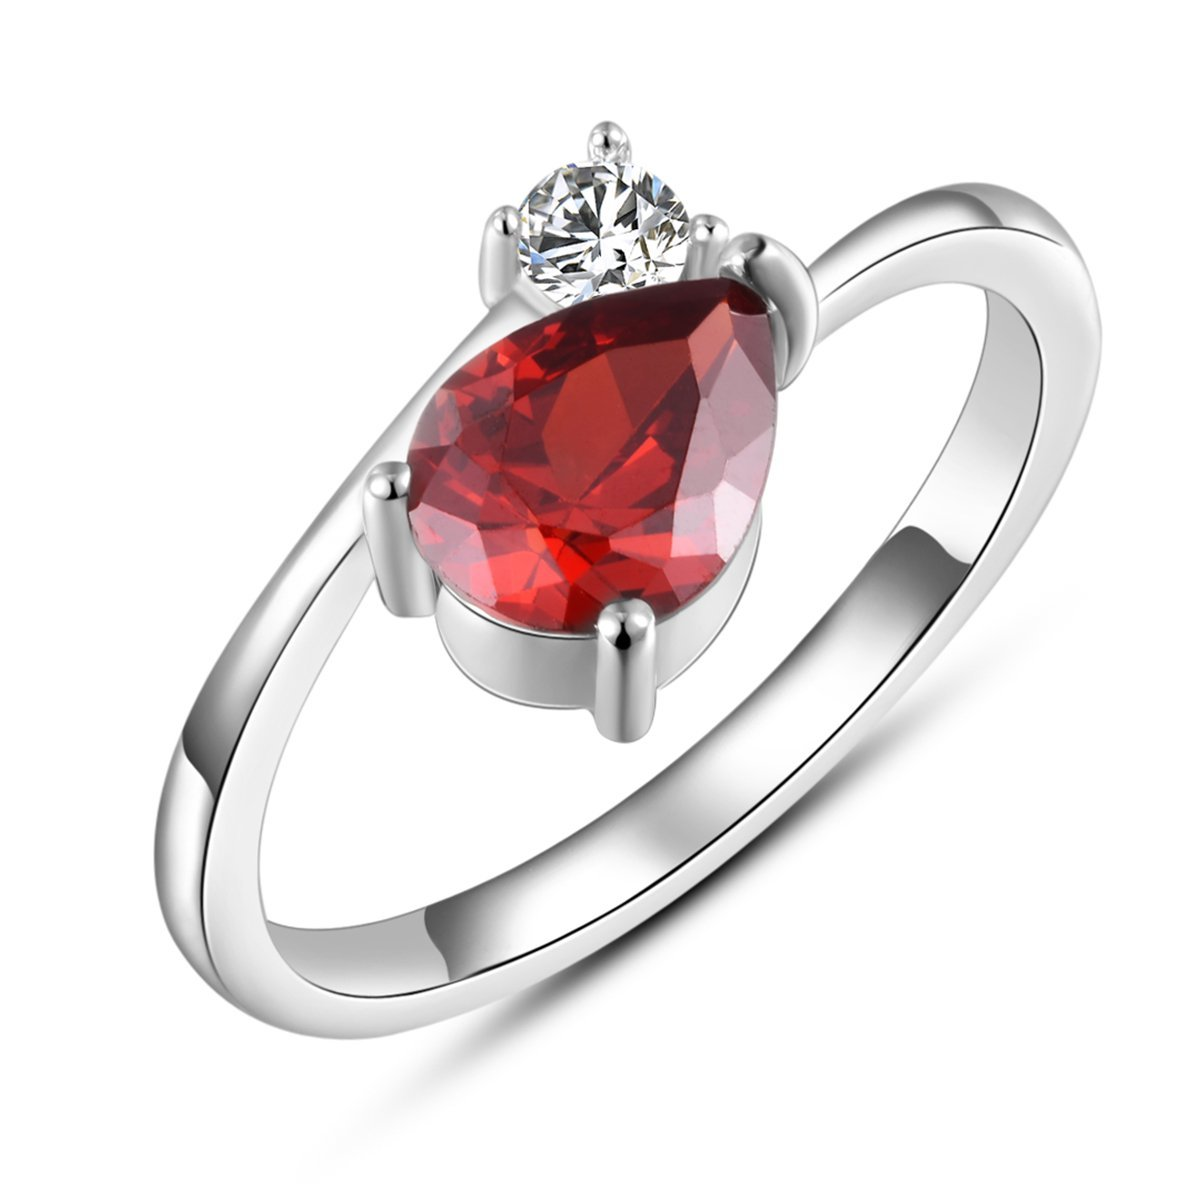 ZowBinBin 925 Sterling Silver Red Diamond Rings-Elegant Red Diamond Open Rings Adjustable for Women, Fashion Shinning Red Cubic Zirconia Silver Open Designer Rings/ Rings